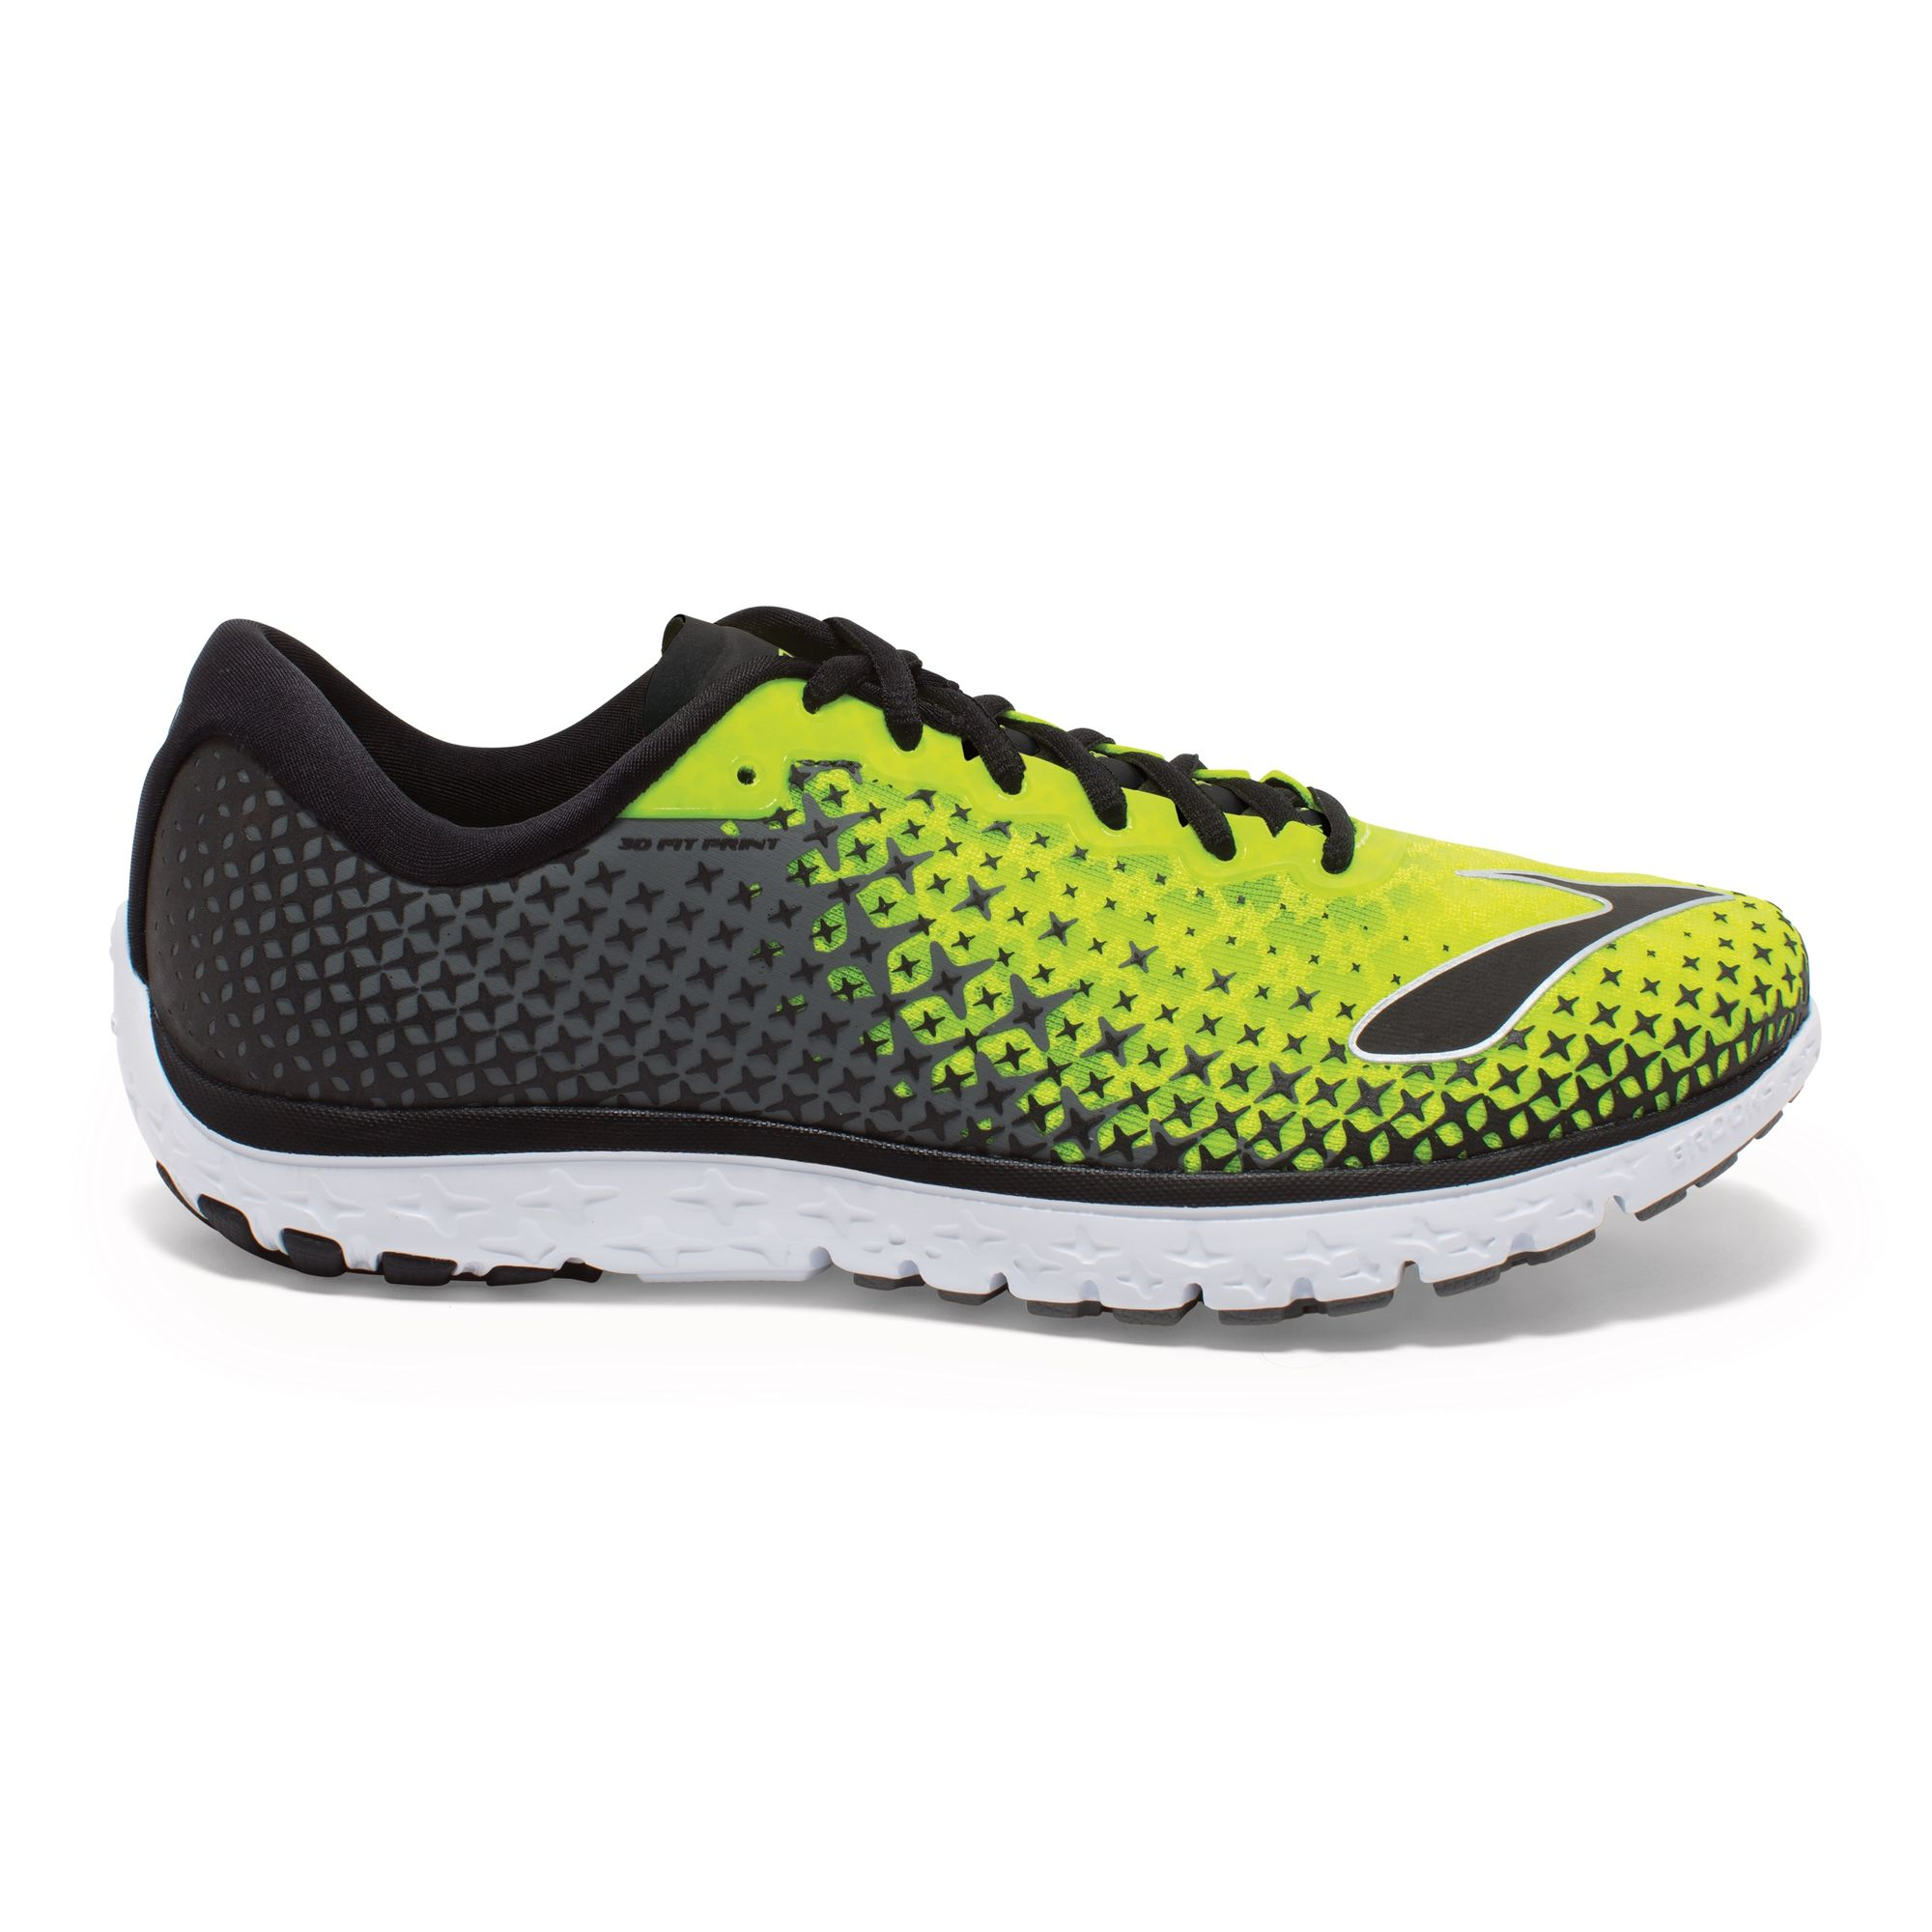 Brooks Pure Flow 5 in Nightlife